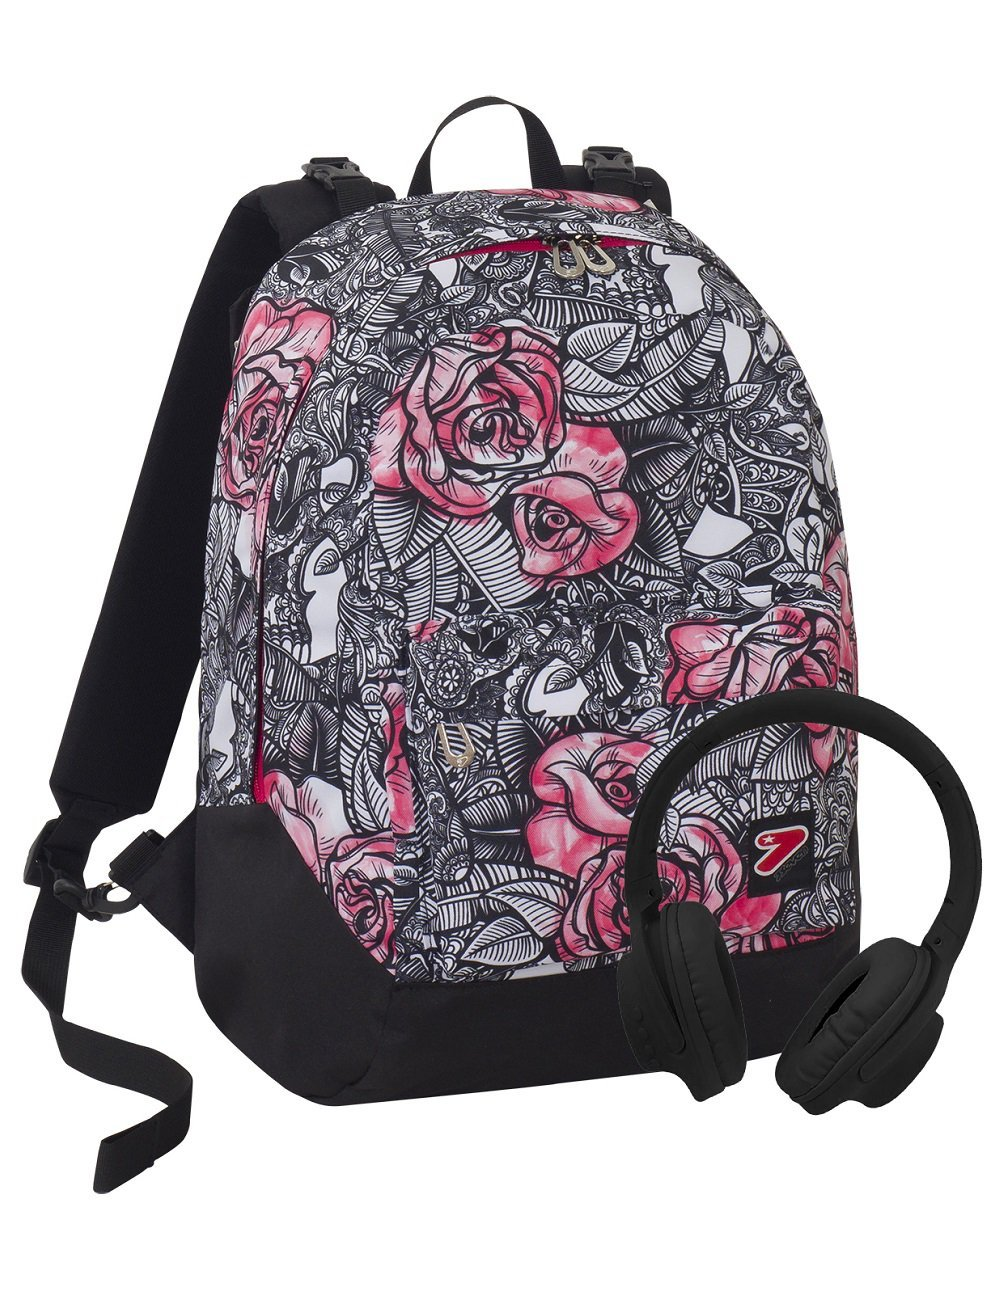 Zaino SEVEN THE DOUBLE - ROUGE - Nero Rosa - cuffie stereo Soft Touch! 2 zaini in 1 REVERSIBILE